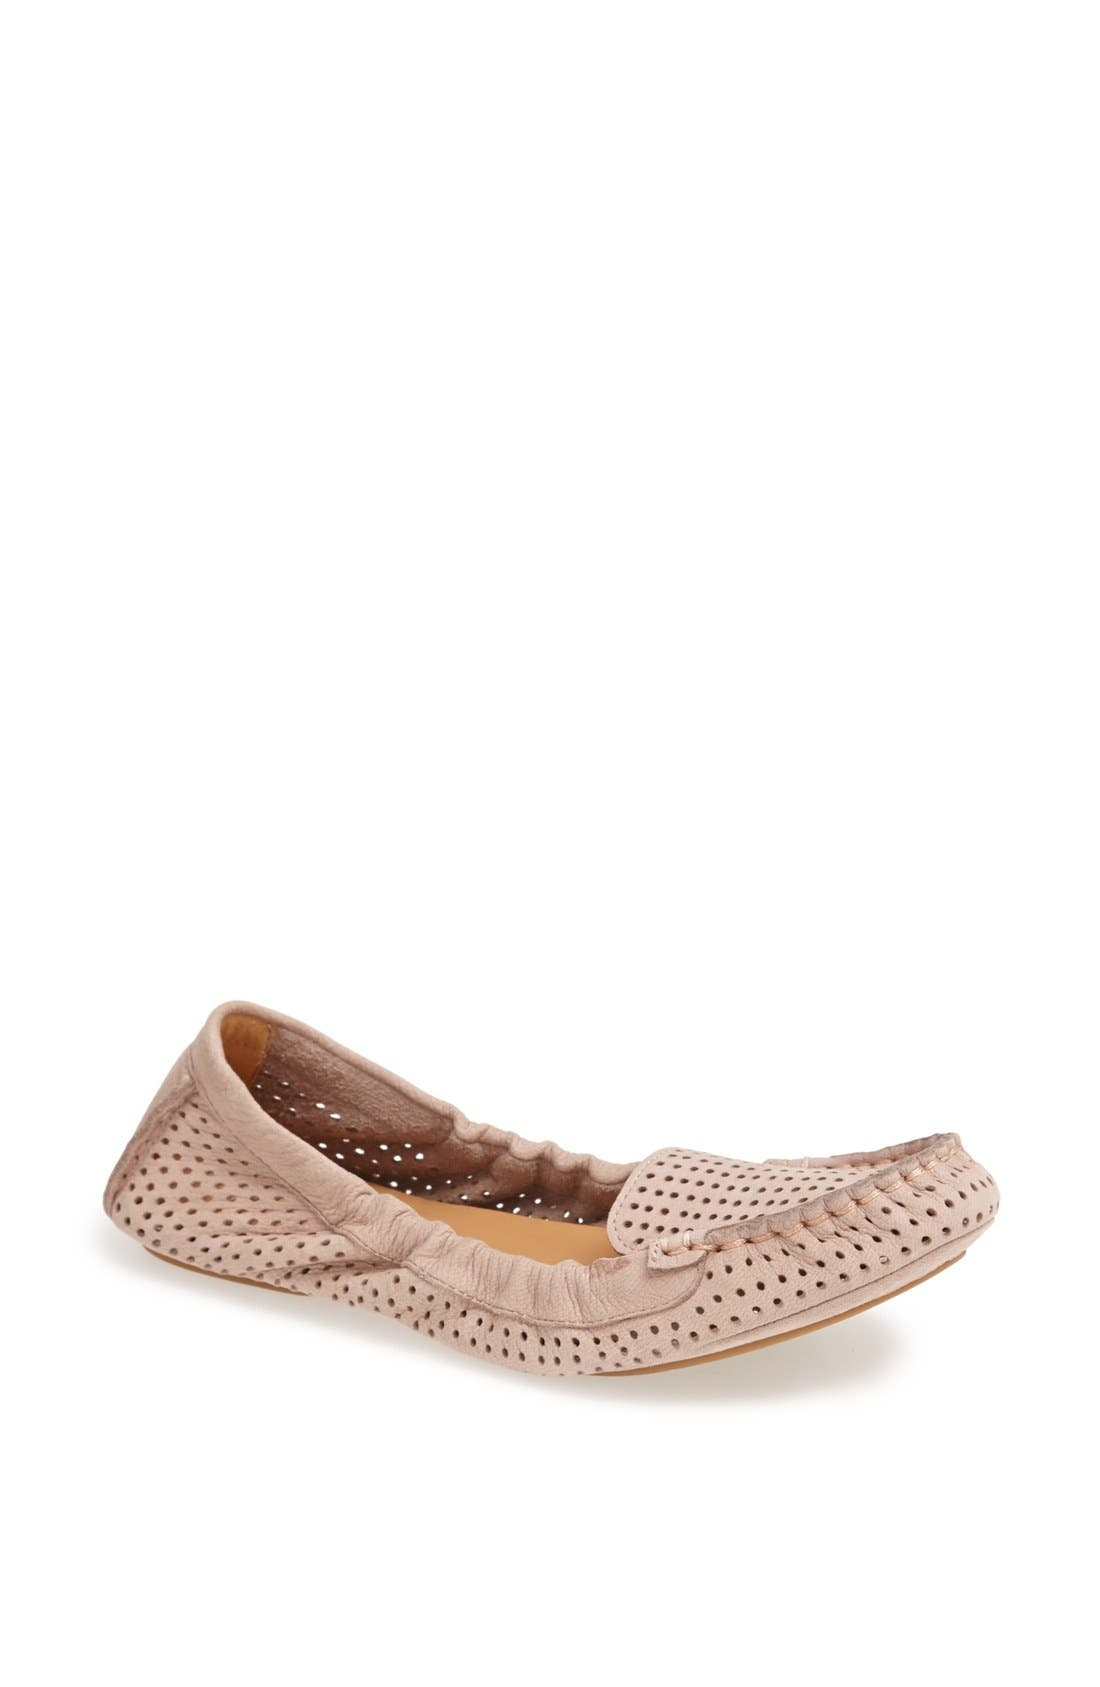 Main Image - Nine West 'Teanna' Perforated Nubuck Flat